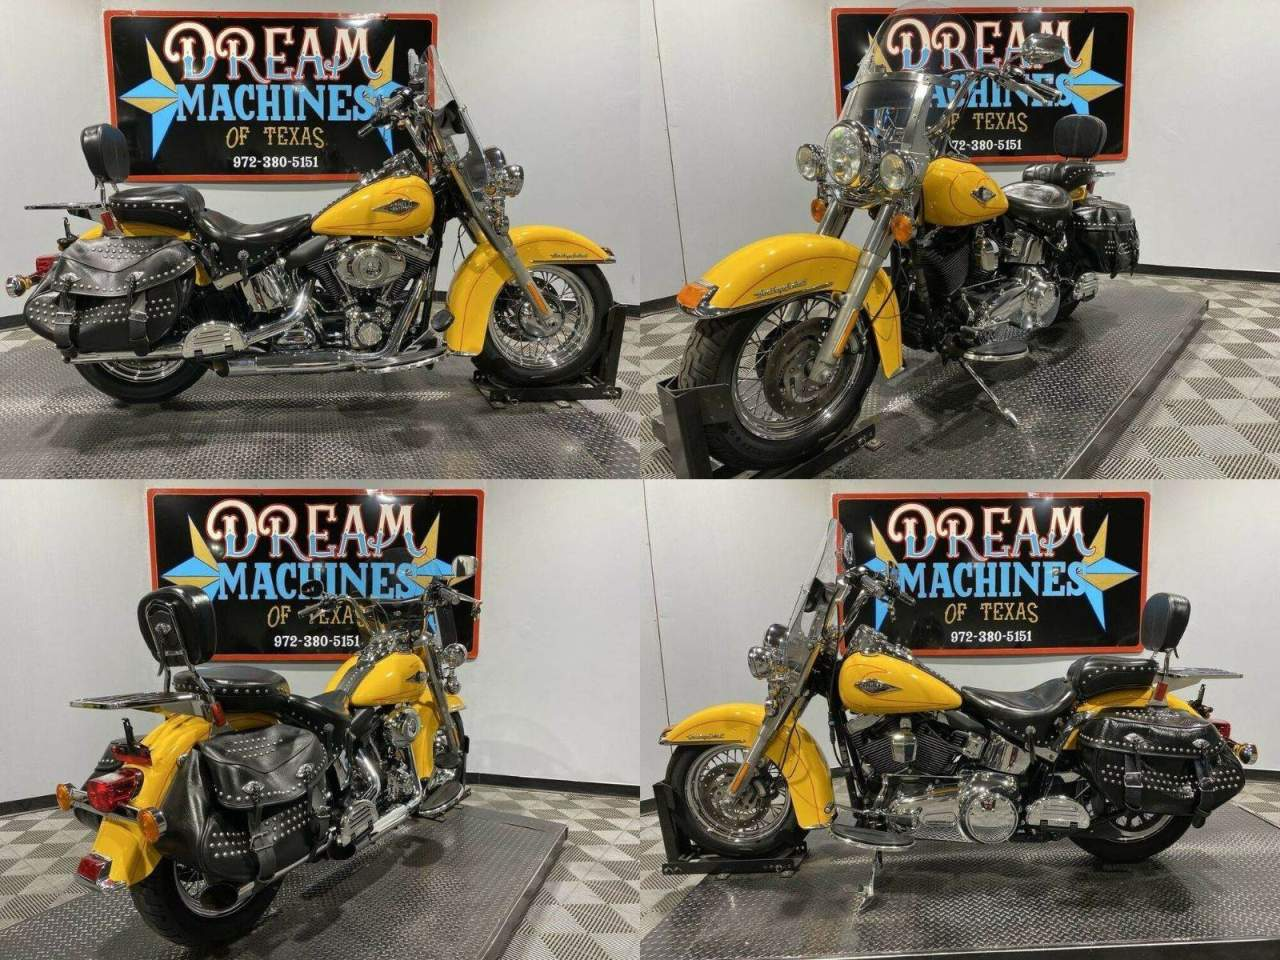 2011 Harley-Davidson FLSTC - Heritage Softail Classic Yellow used for sale